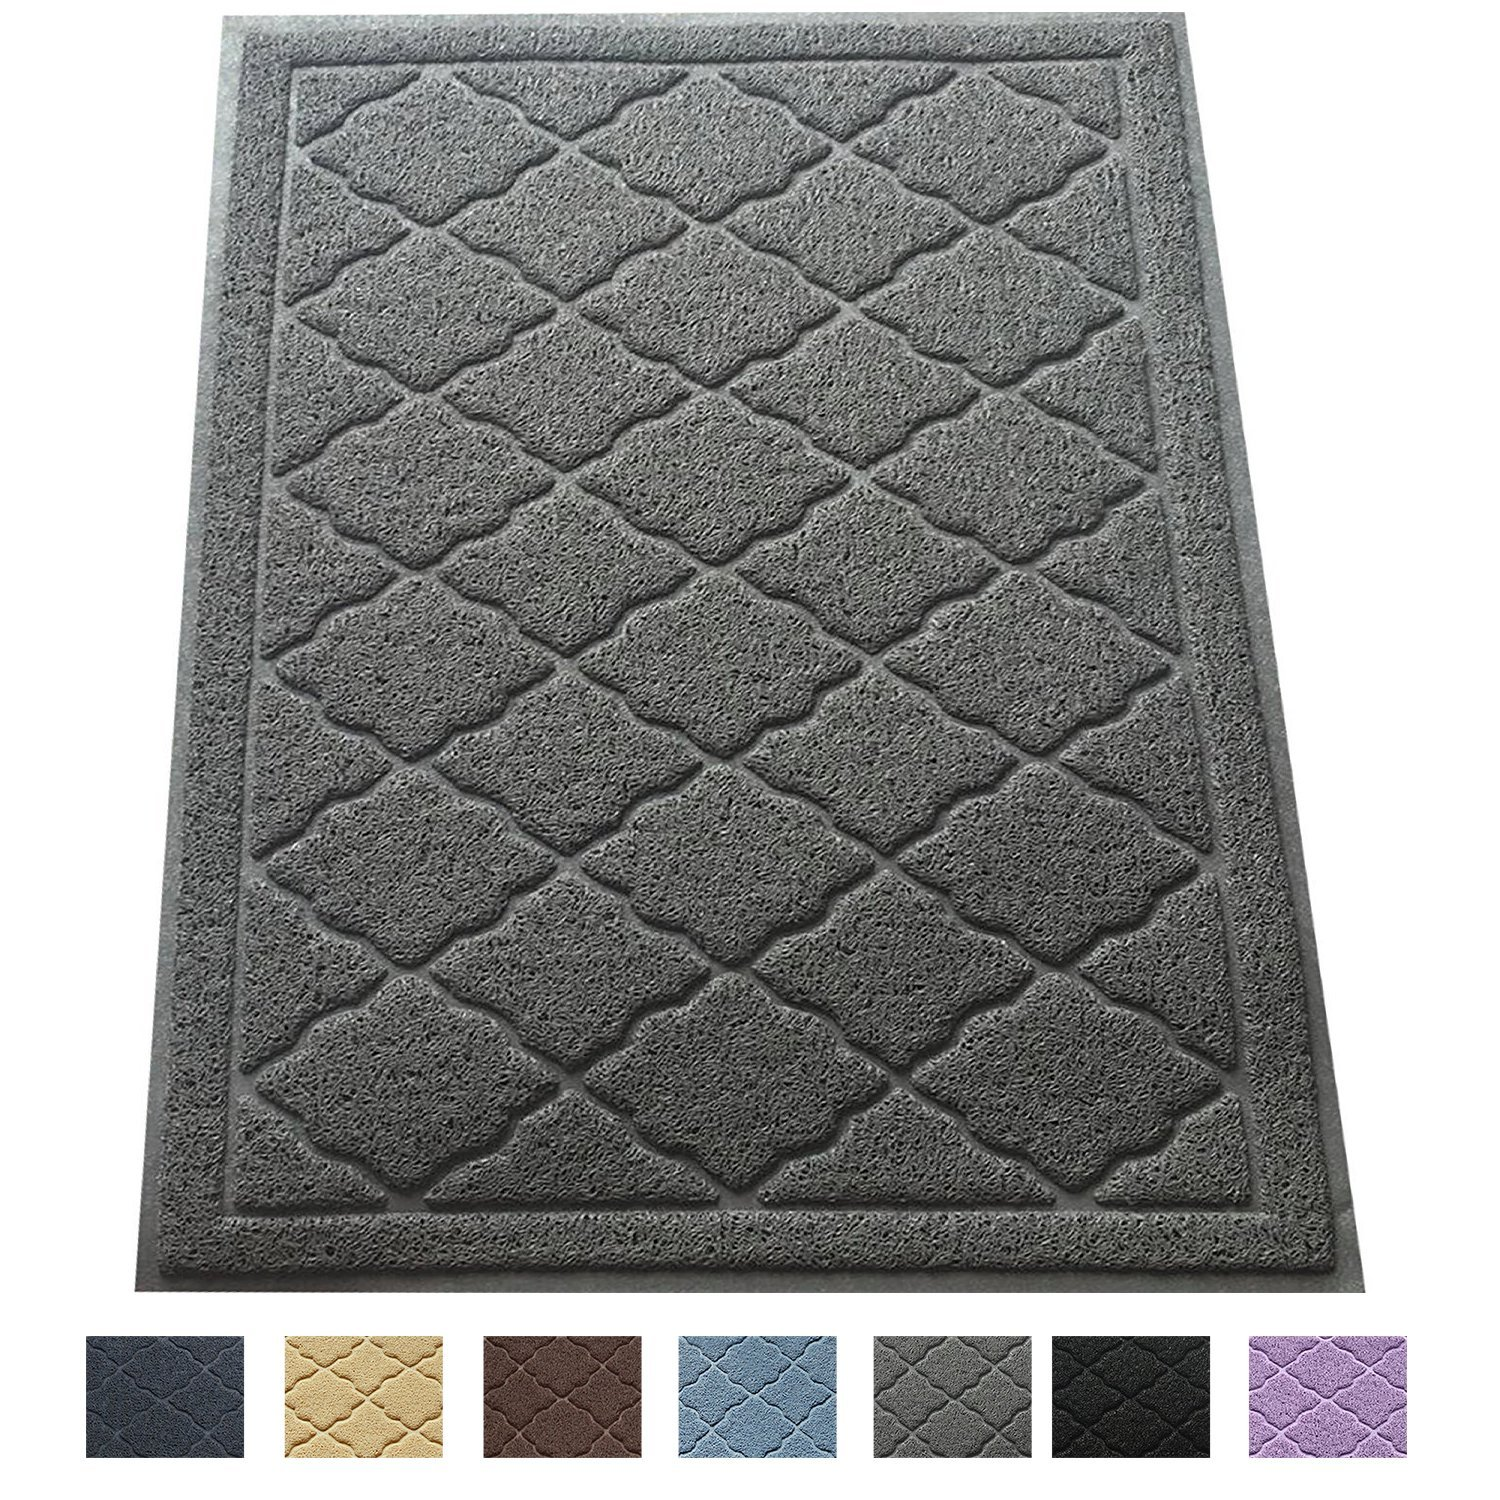 "Premium Large Cat Litter Mat 35"" x 23"", Traps Messes, Easy Clean, Durable, Phthalate Free, Litter Box Mat with Scatter Control - Soft on Kitty Paws"